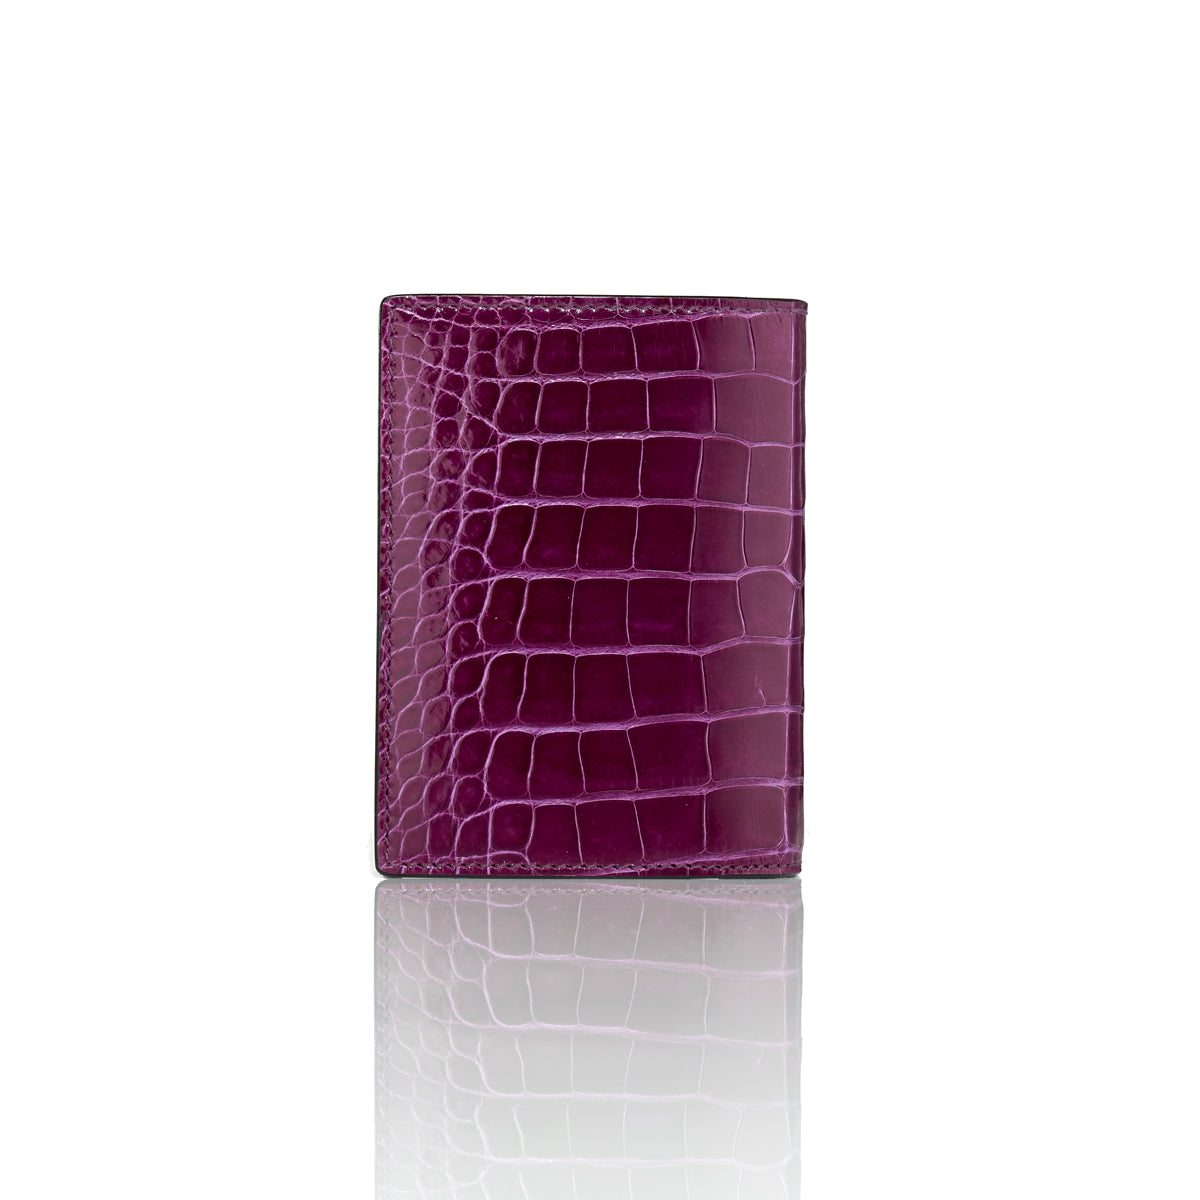 Vertical Bi-Fold Wallet - Purple Alligator